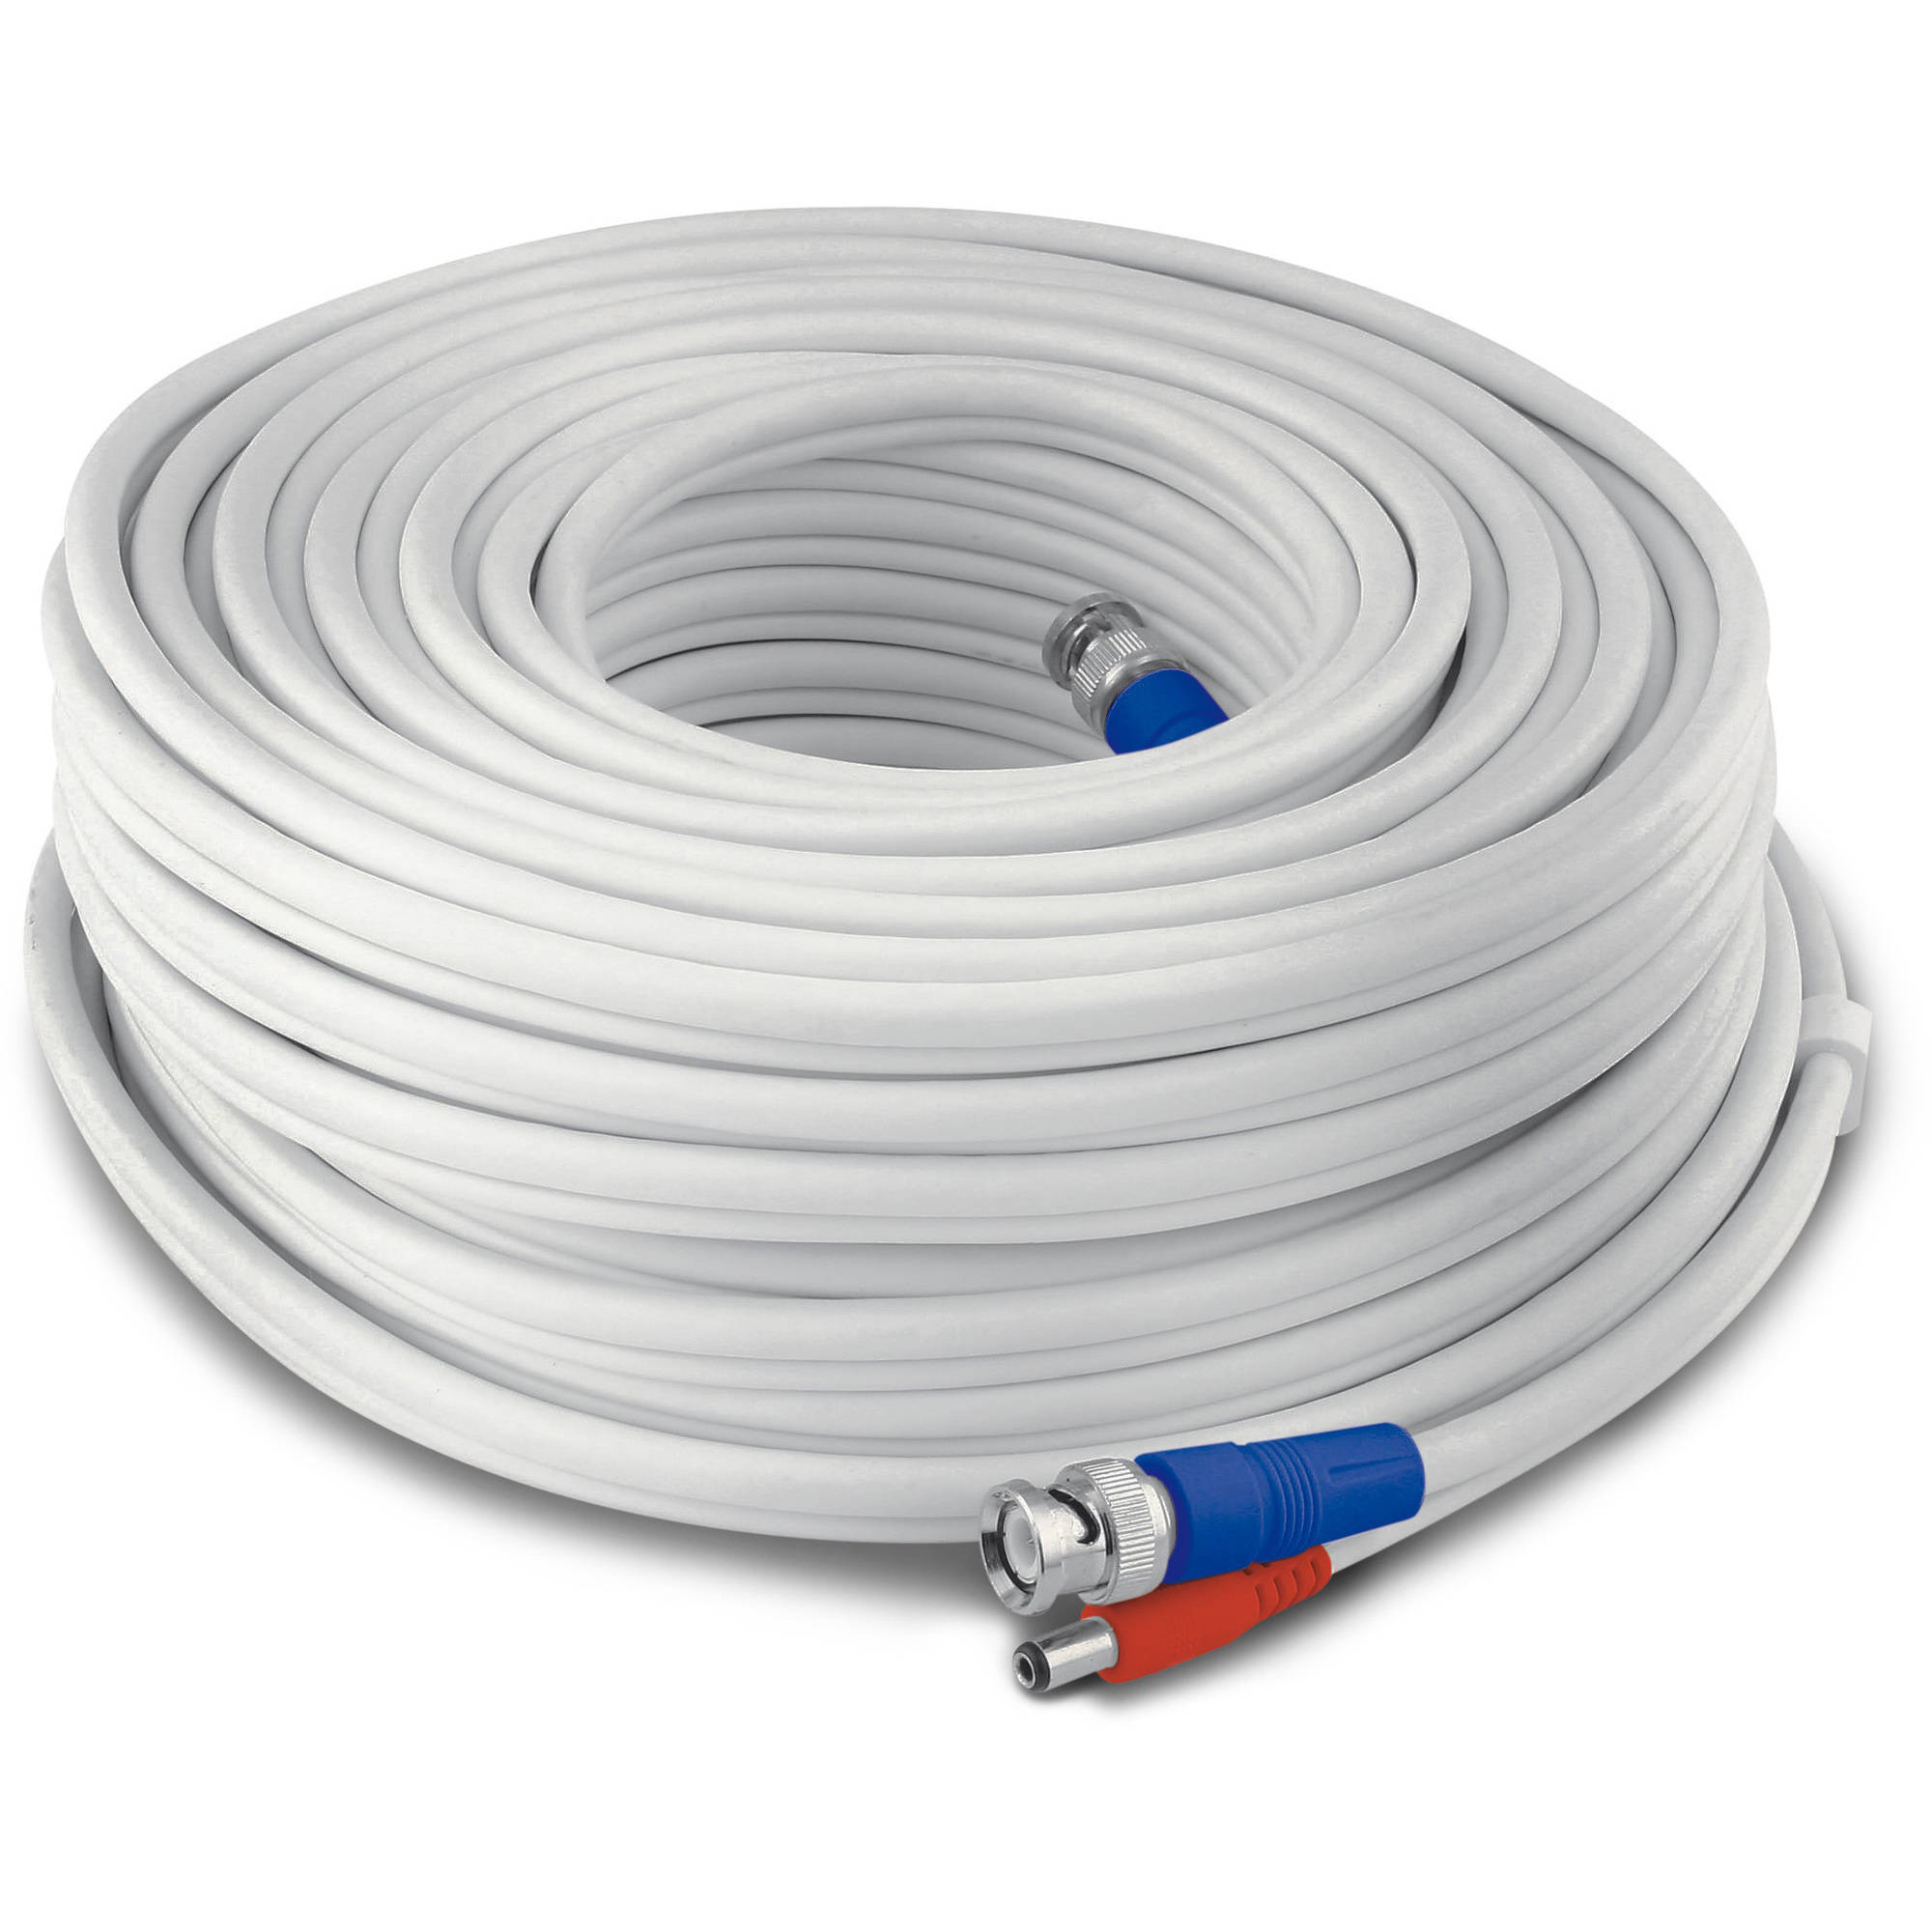 Walmart ONN BNC Security Cable, 75'